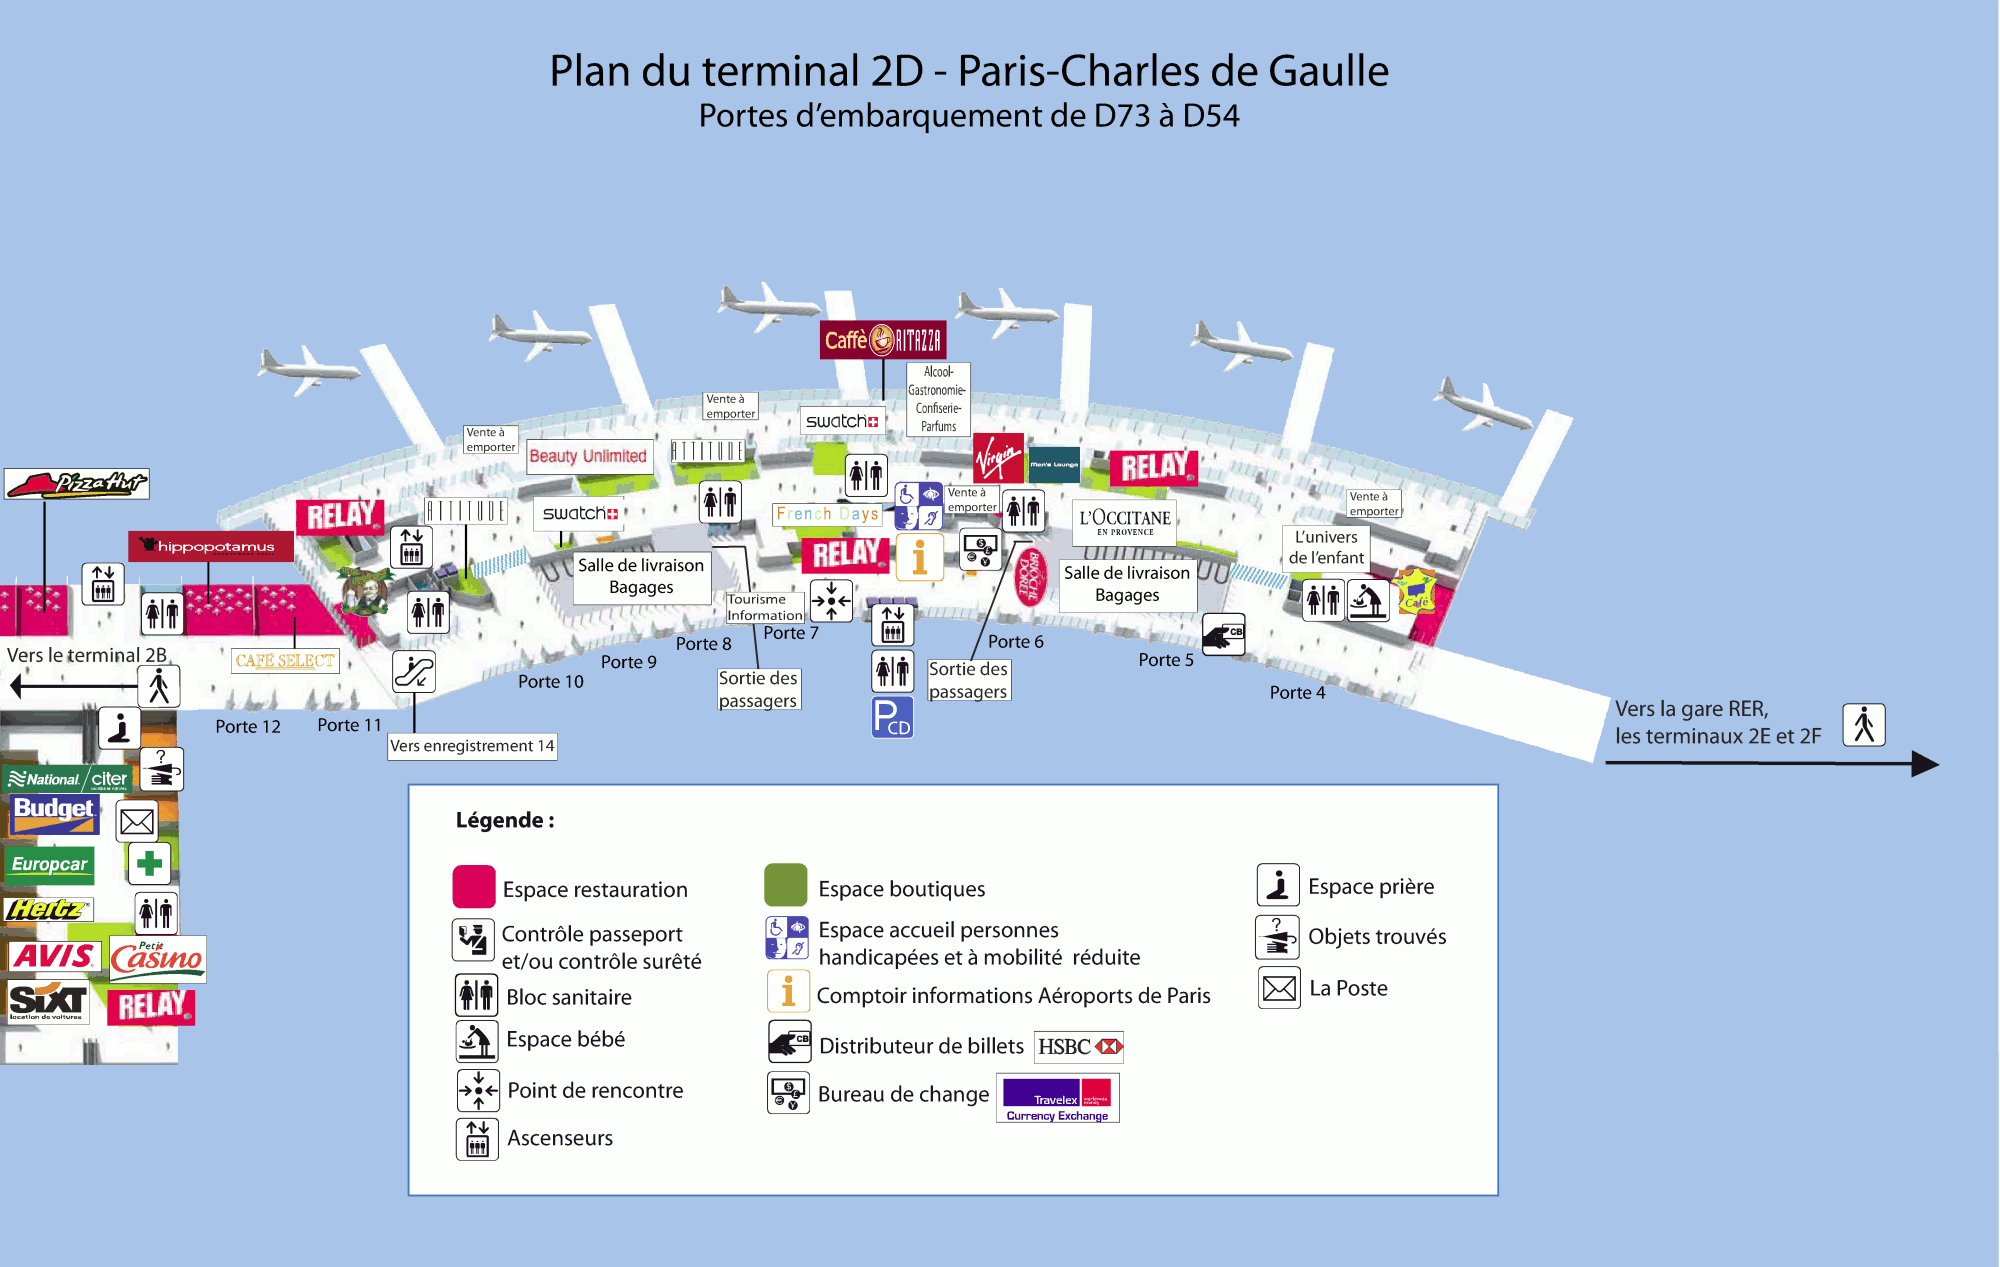 cdg terminal 2d map Roissy Charles De Gaulle Airport Cdg On Francetravellight Com cdg terminal 2d map